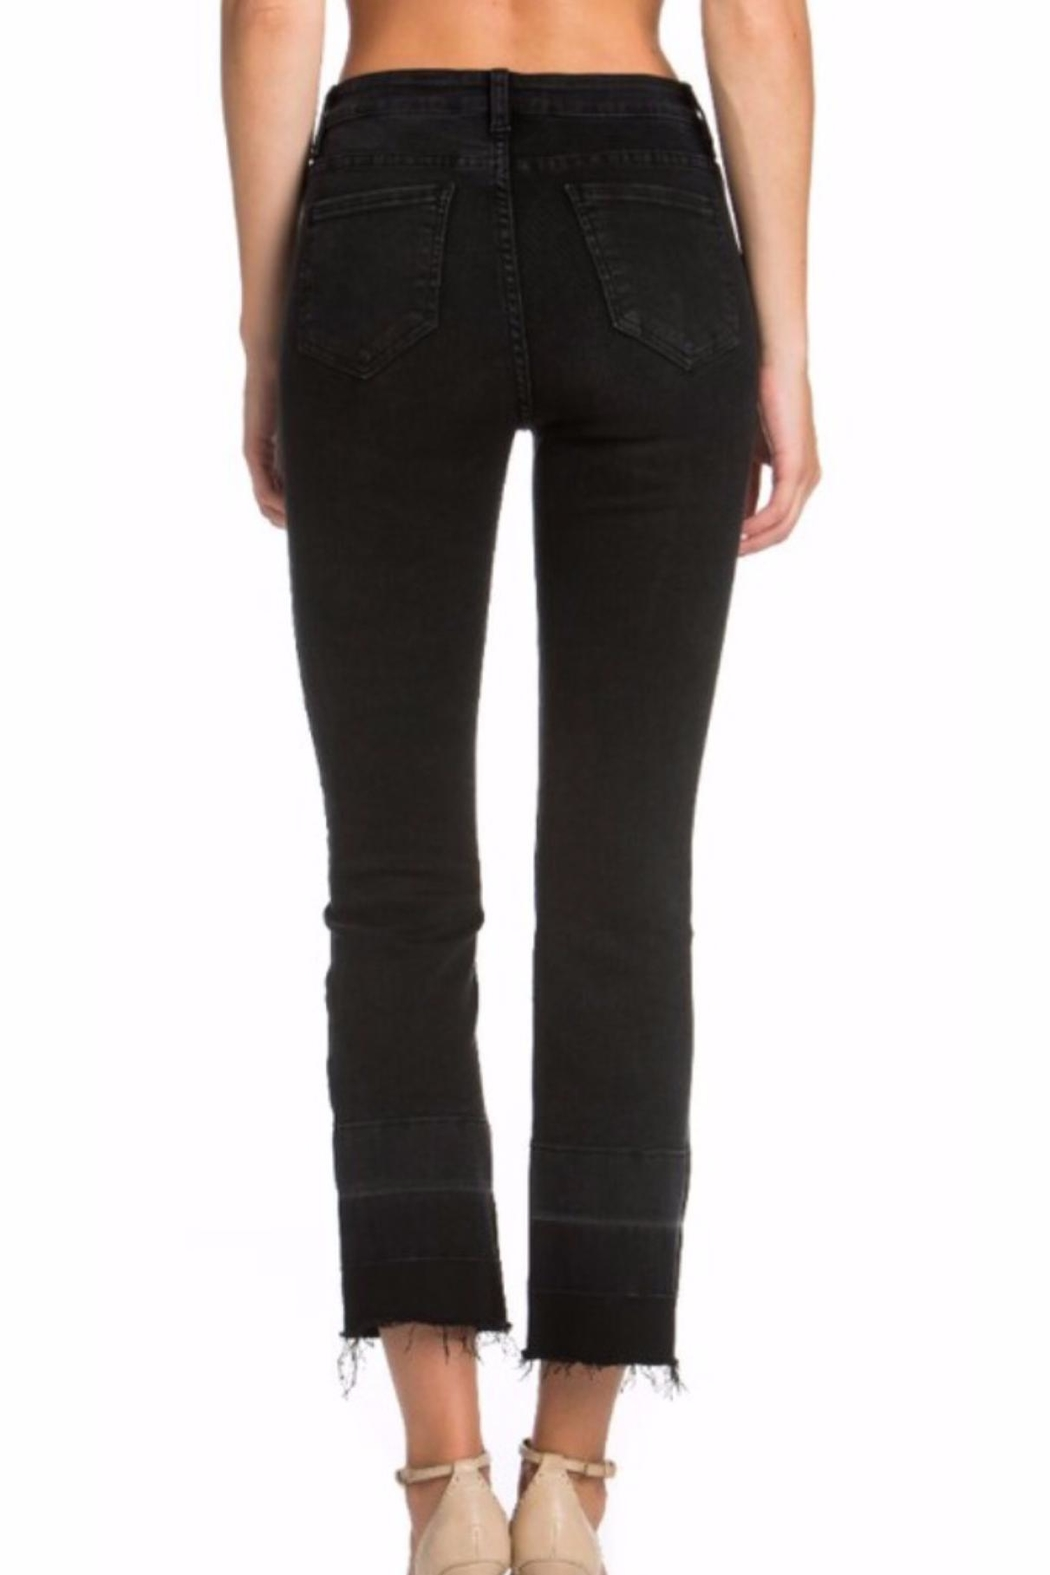 Cello Jeans Black Wash Jeans - Front Full Image